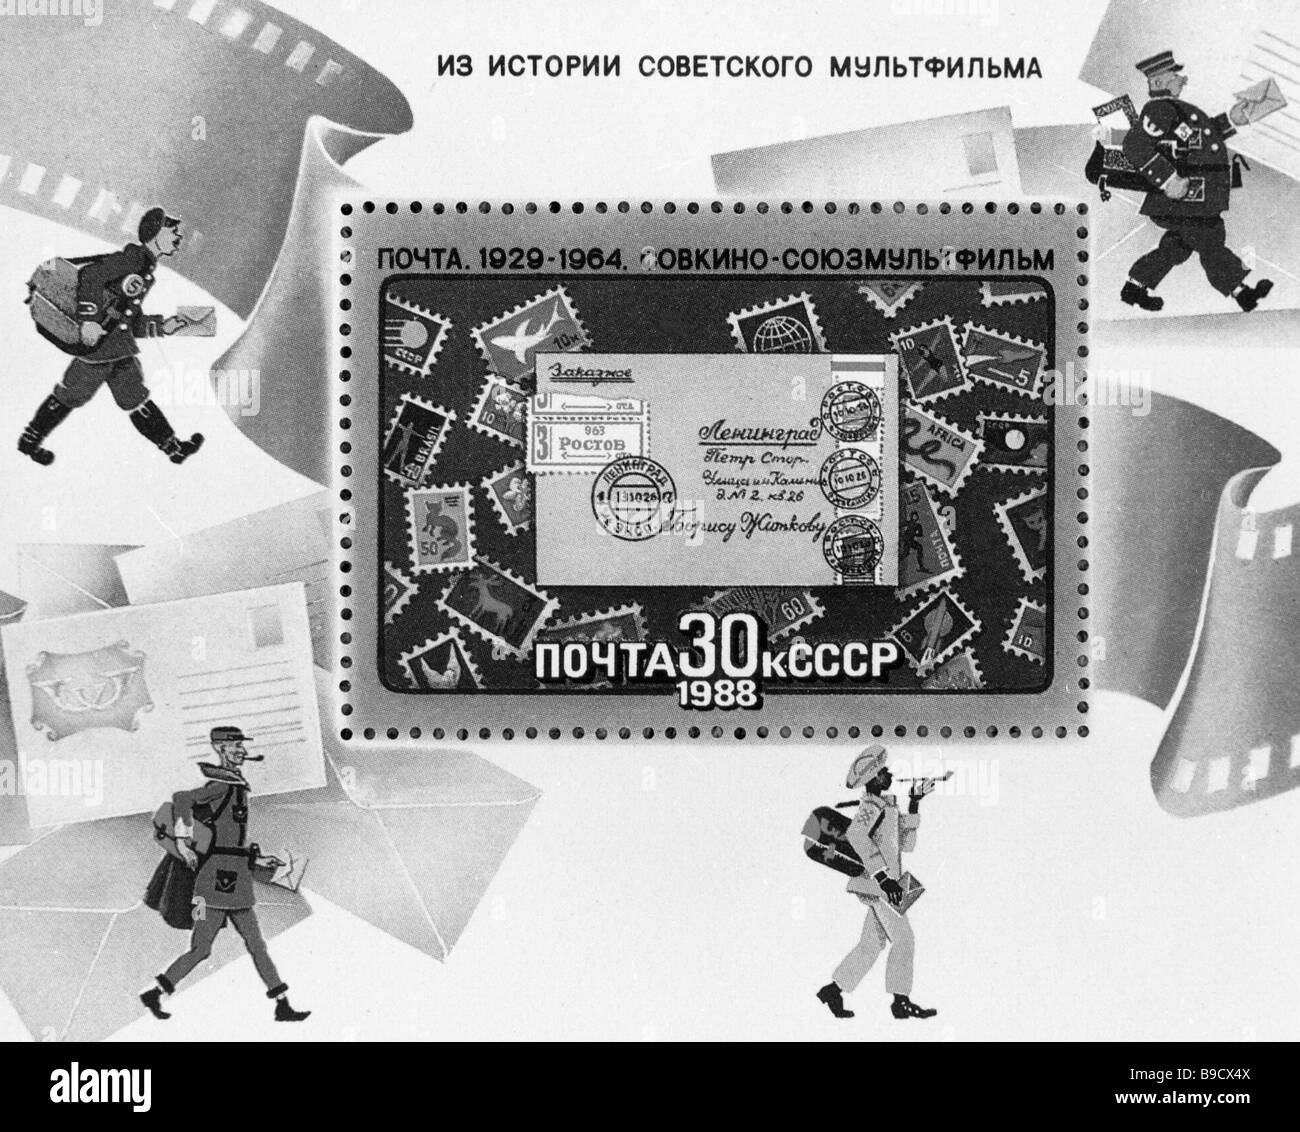 A postage stamp depicting the history of Soviet cartoons - Stock Image